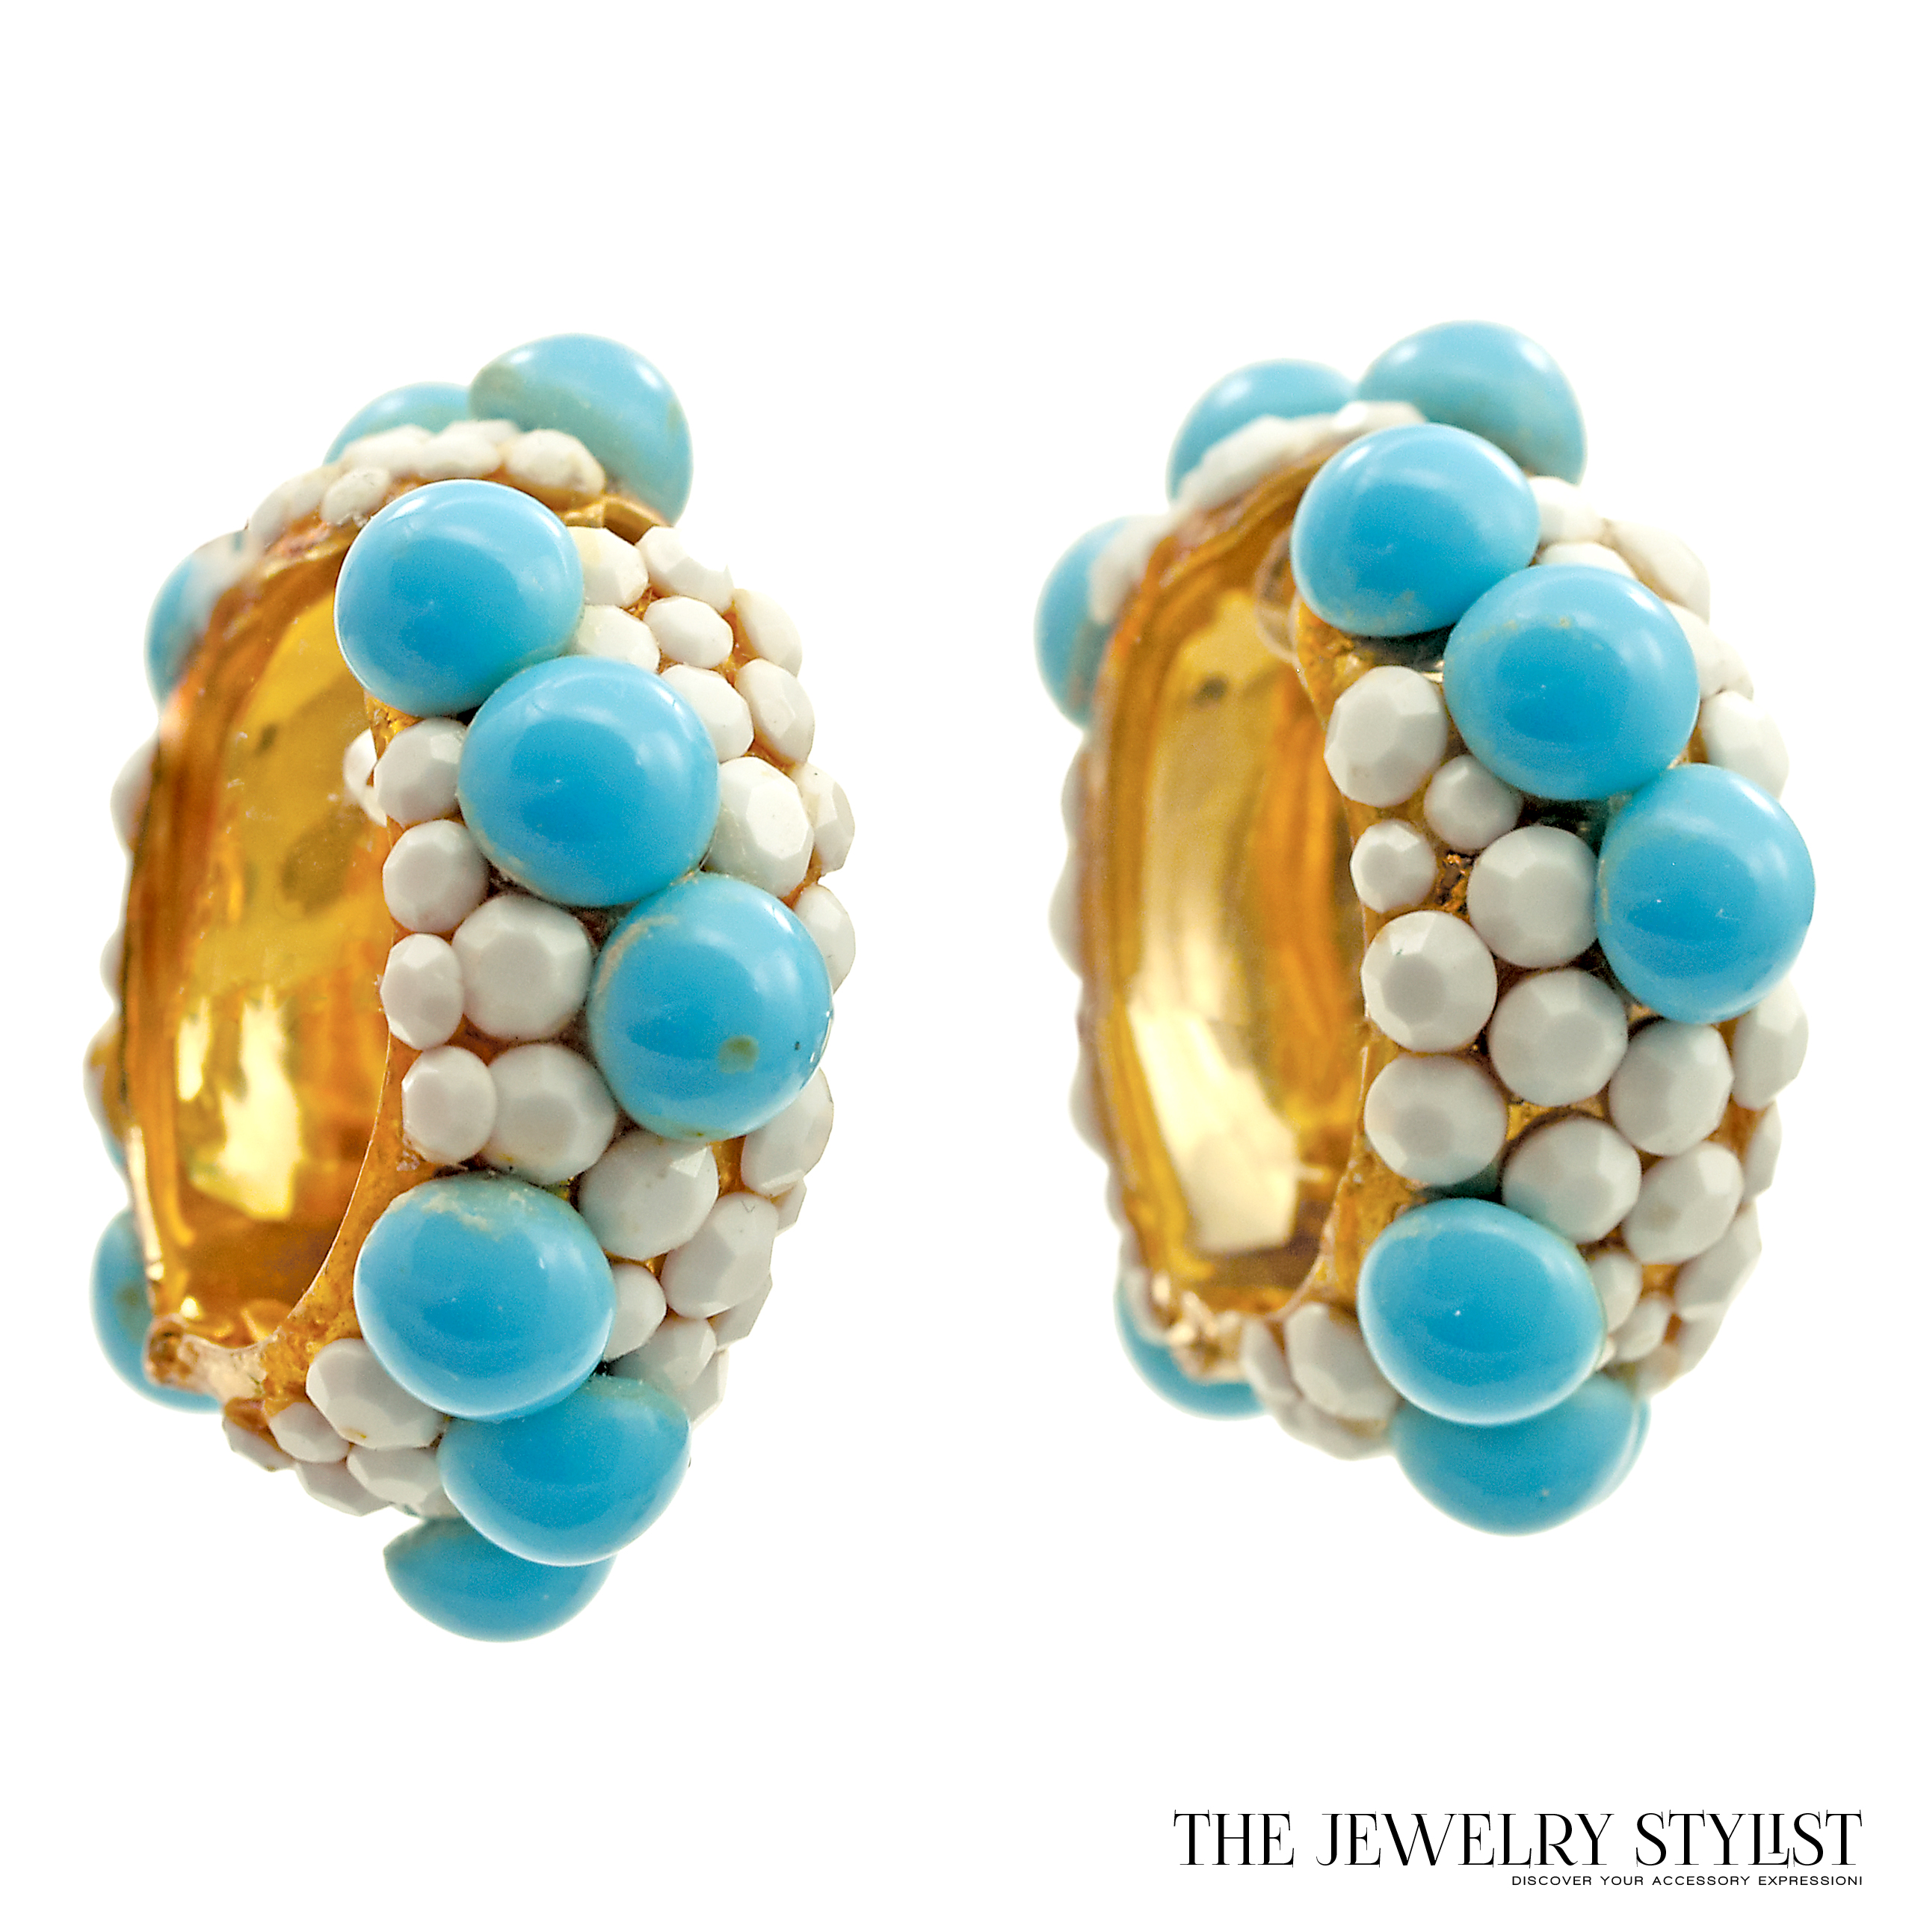 Vintage Wedding Band Earrings with Turquoise and White-Colored Rhinestone Accents